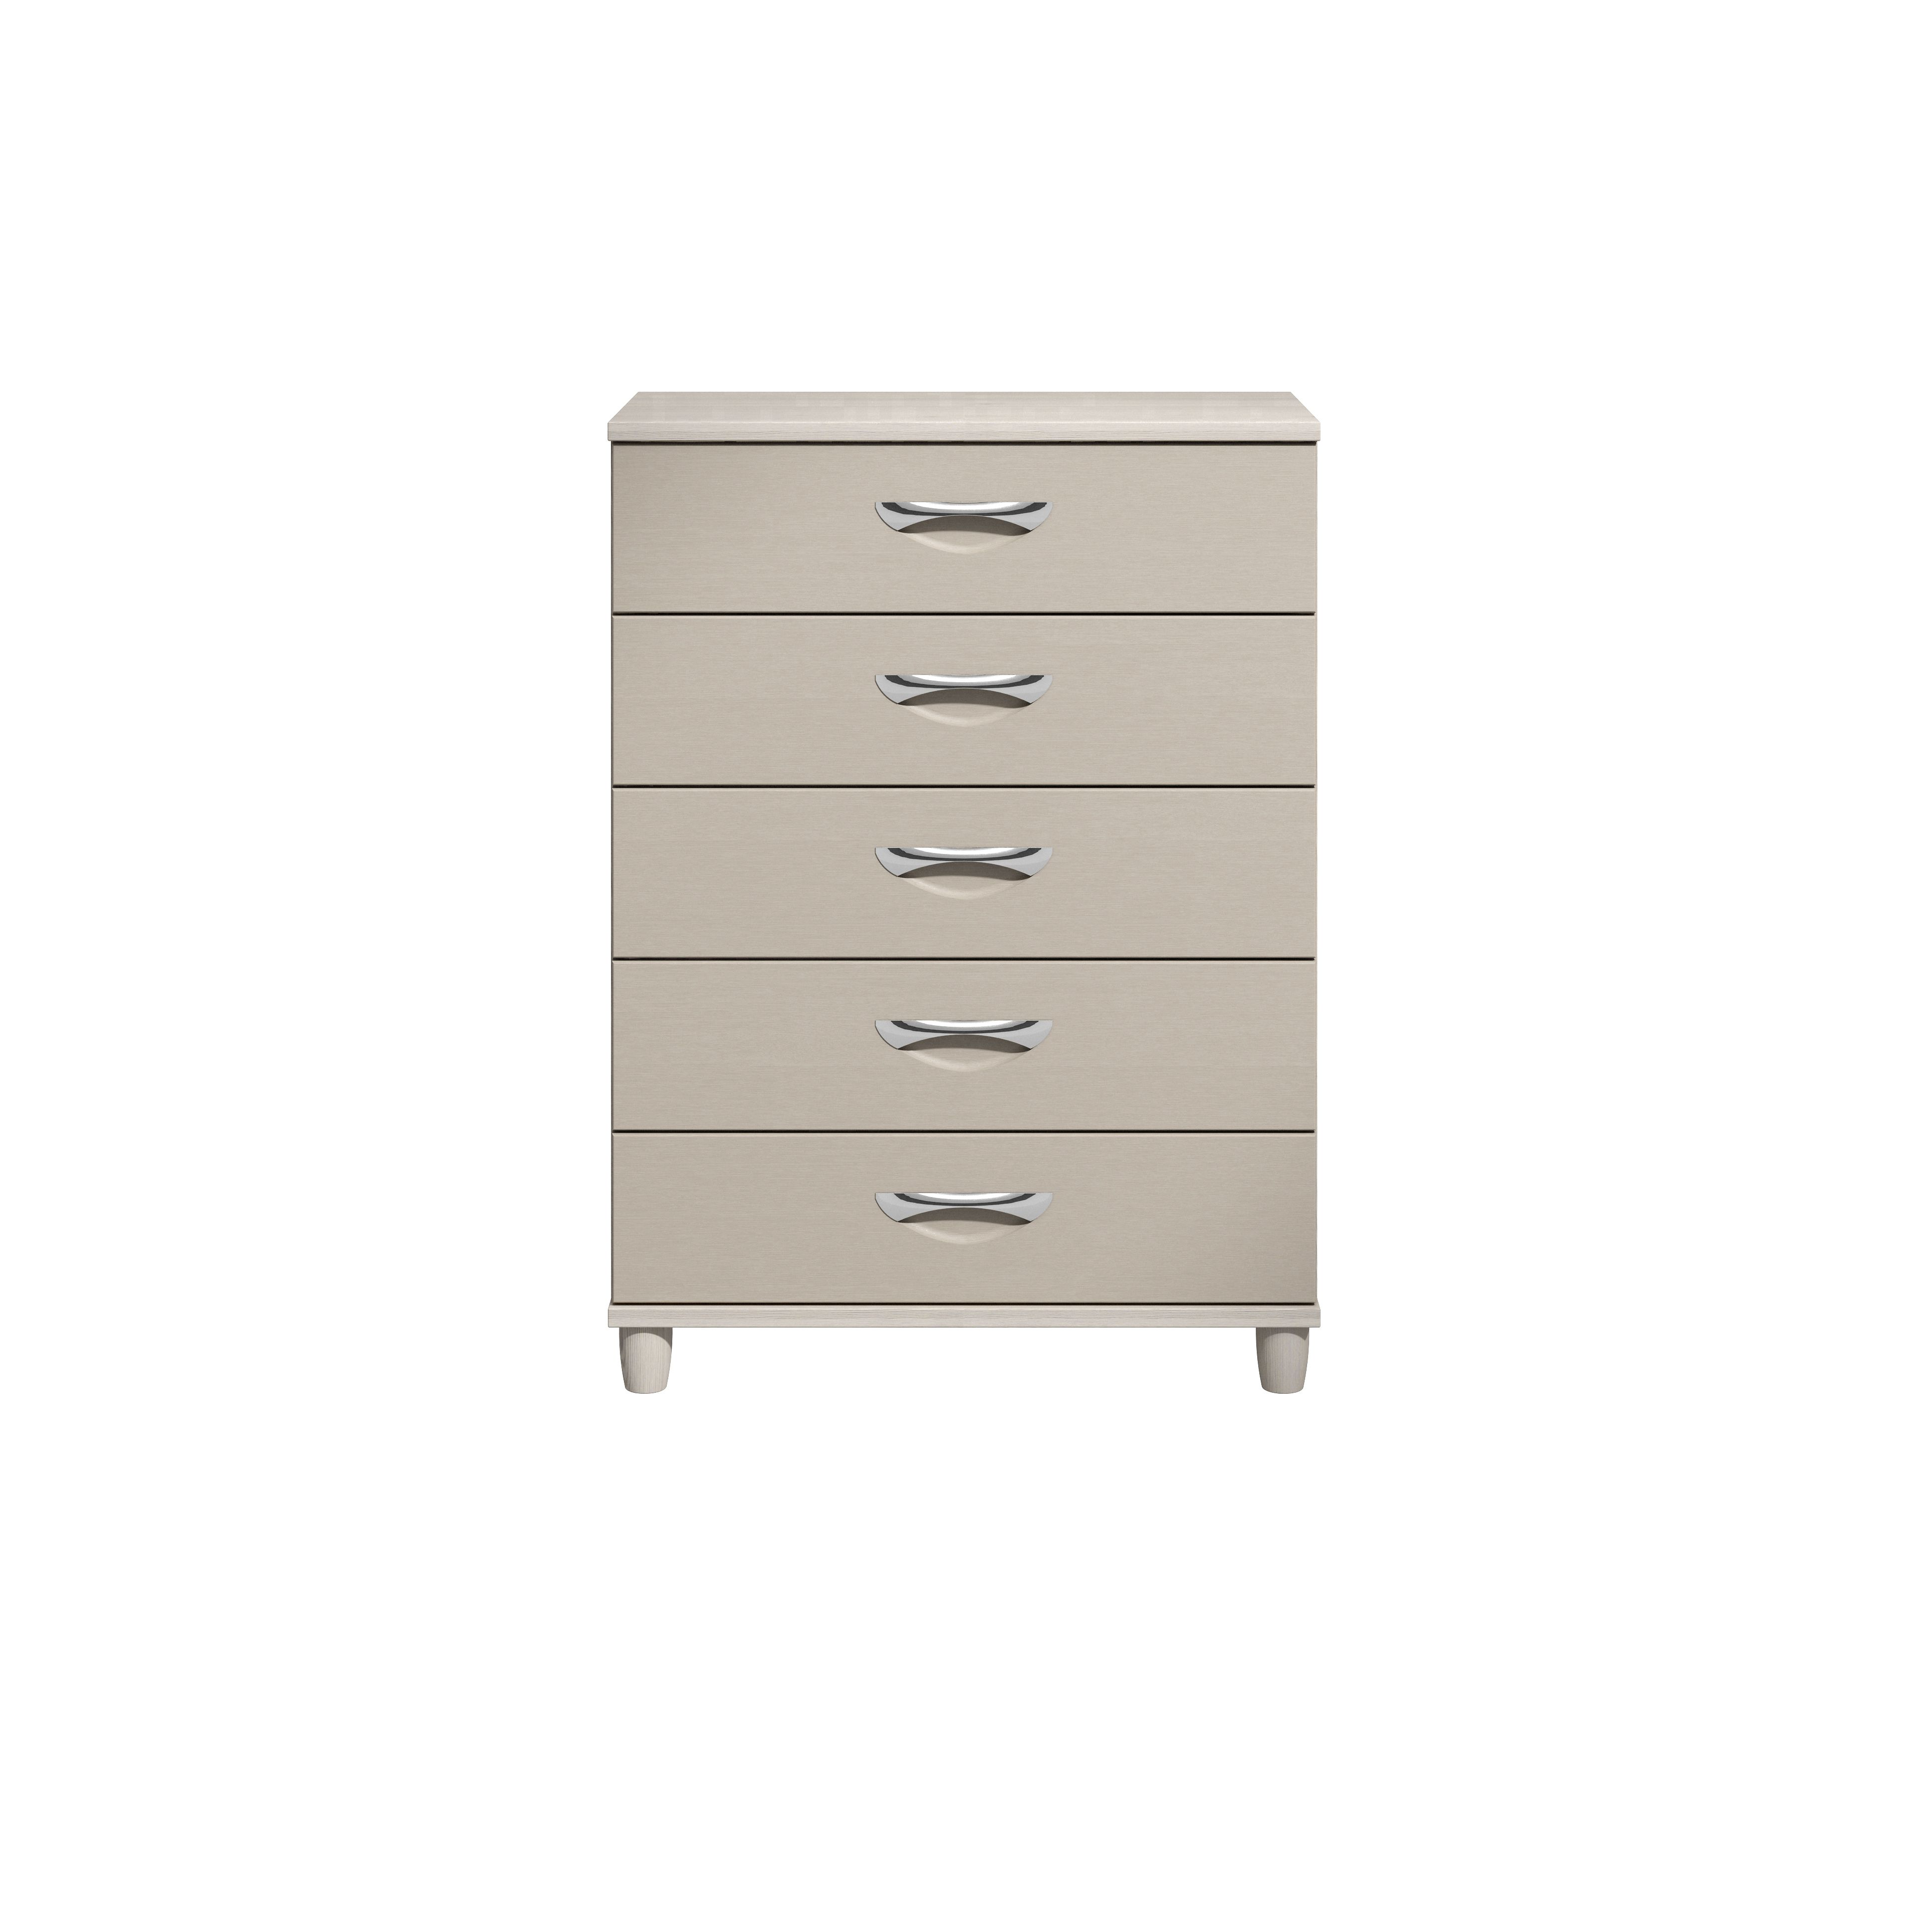 Consort Juno Cashmere Elm Effect Textured 5 Drawer Chest (h)1100mm (w)800mm (d)420mm